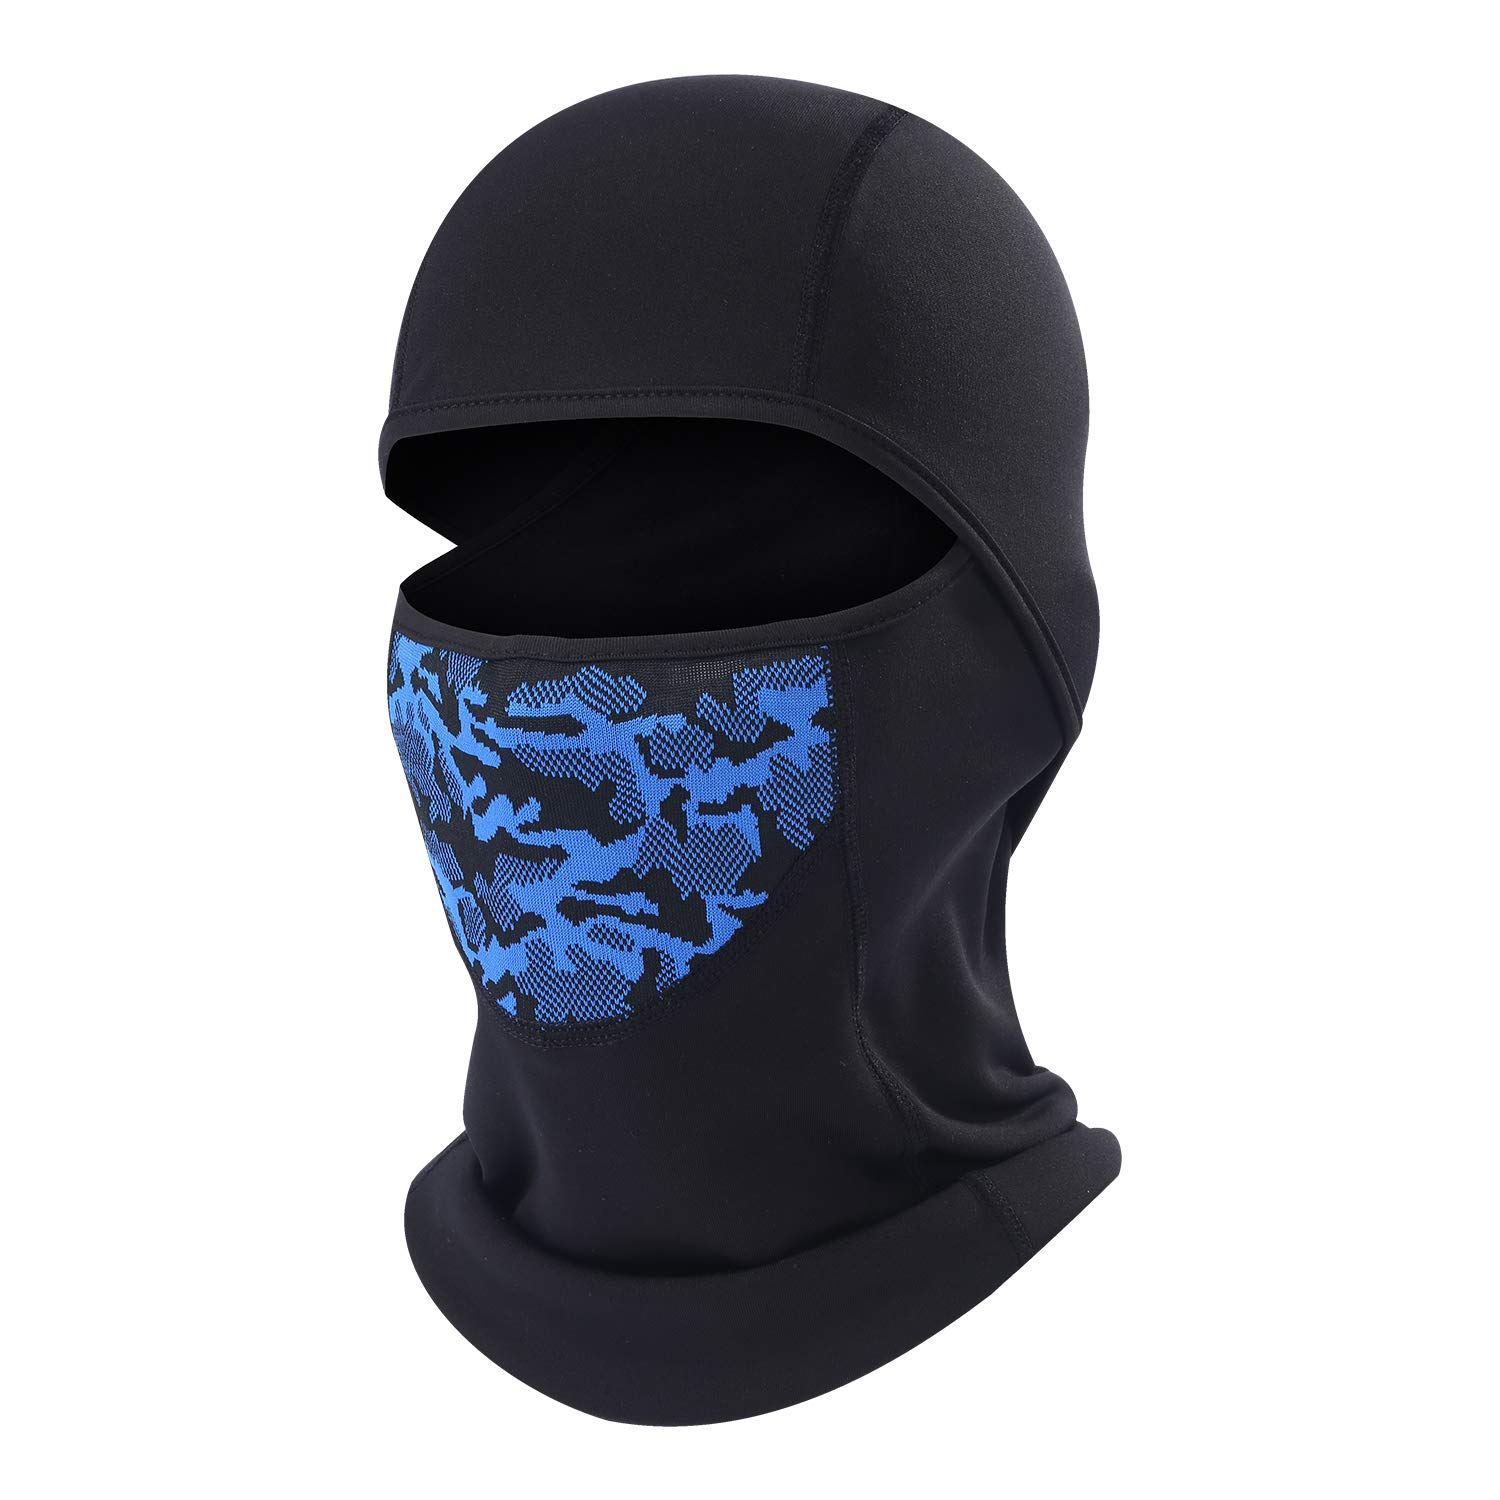 AIWOLU Cold Weather Ski Face Mask for Men Thermal Fleece Balaclava Hood for Skiing, Snowboard, Snowmobile, Motorcycle, Walking and More Outdoor Sports by AIWOLU